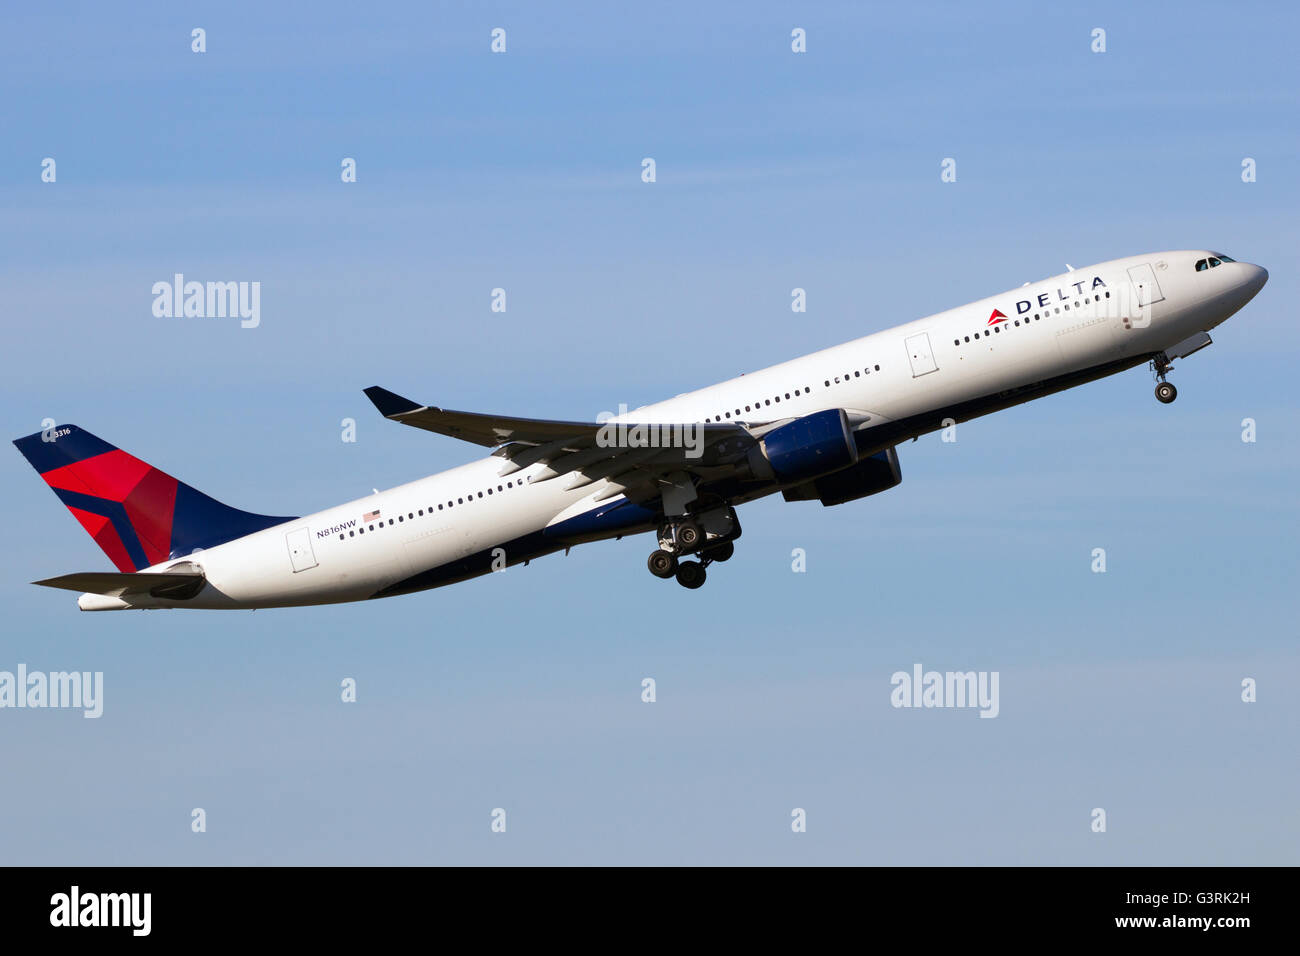 Delta Air Lines Airbus A330 take-off from Schiphol airport - Stock Image